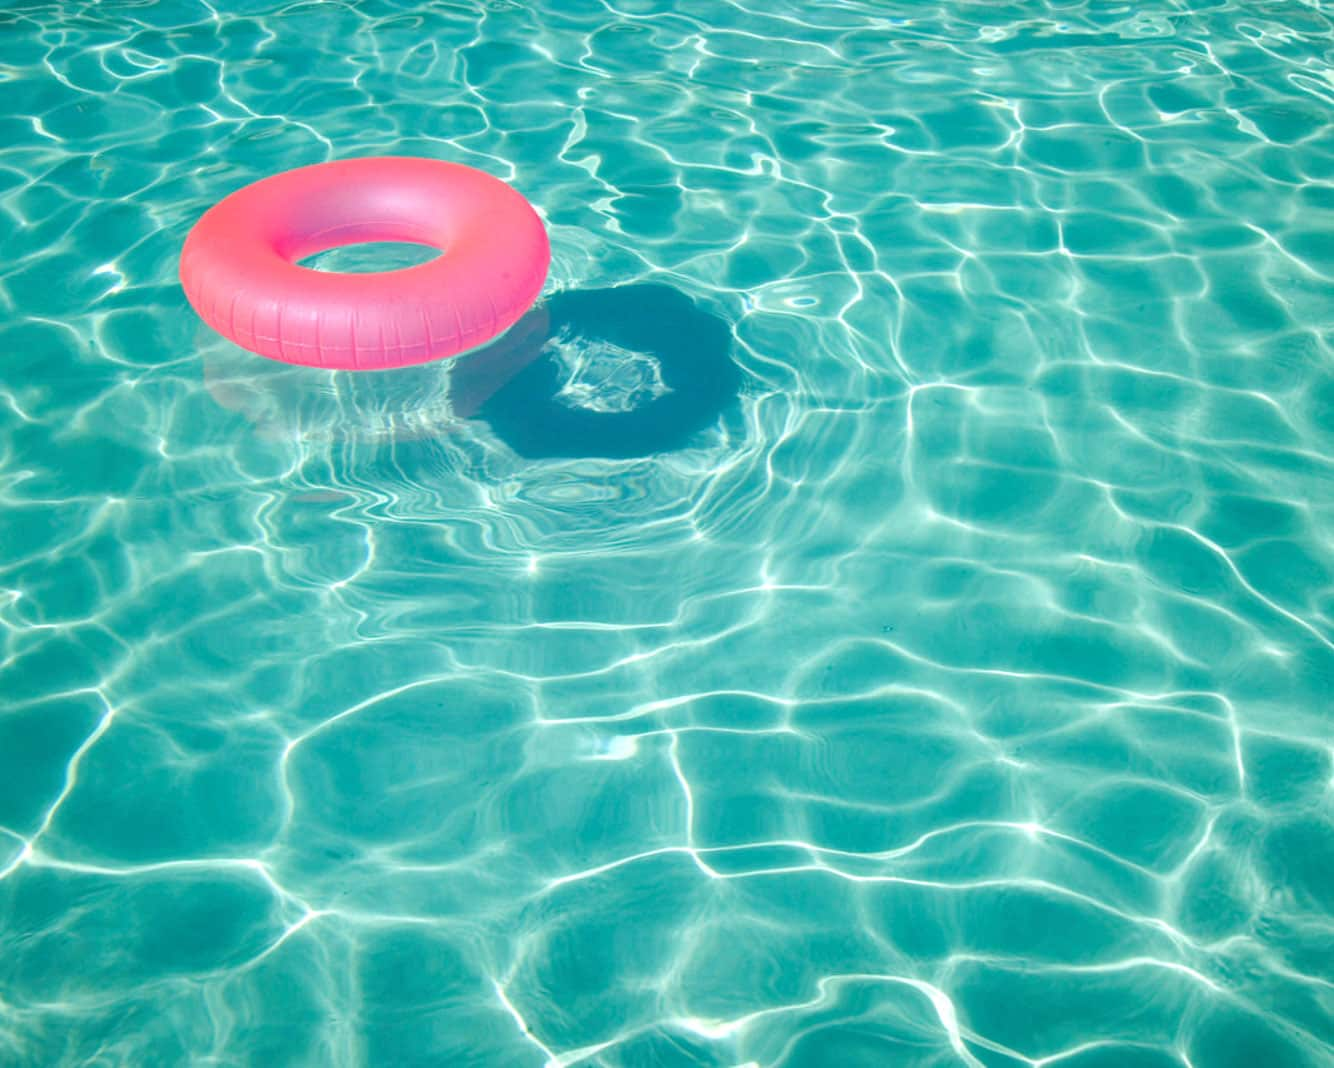 Pink inflatable ring floating in a pool